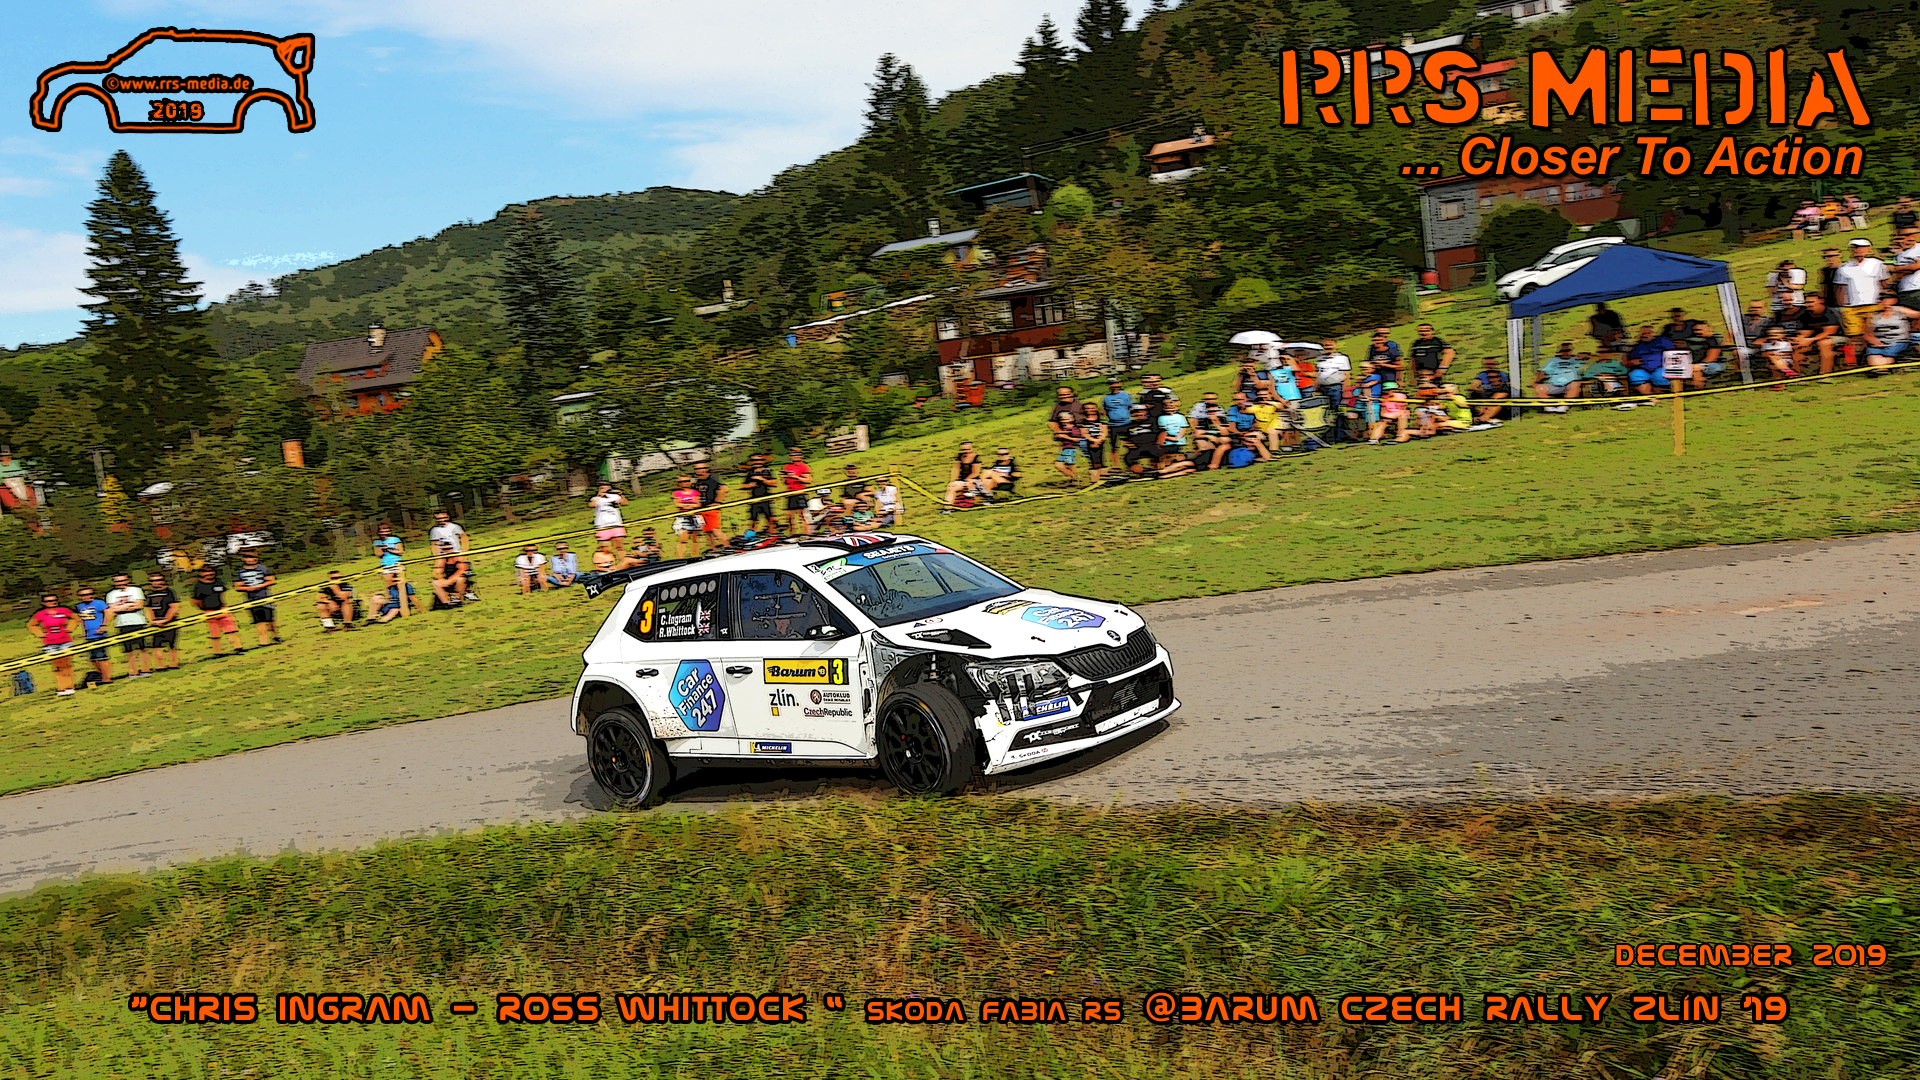 Rally Wallpaper December 2019 Rrs Media Closer To Action